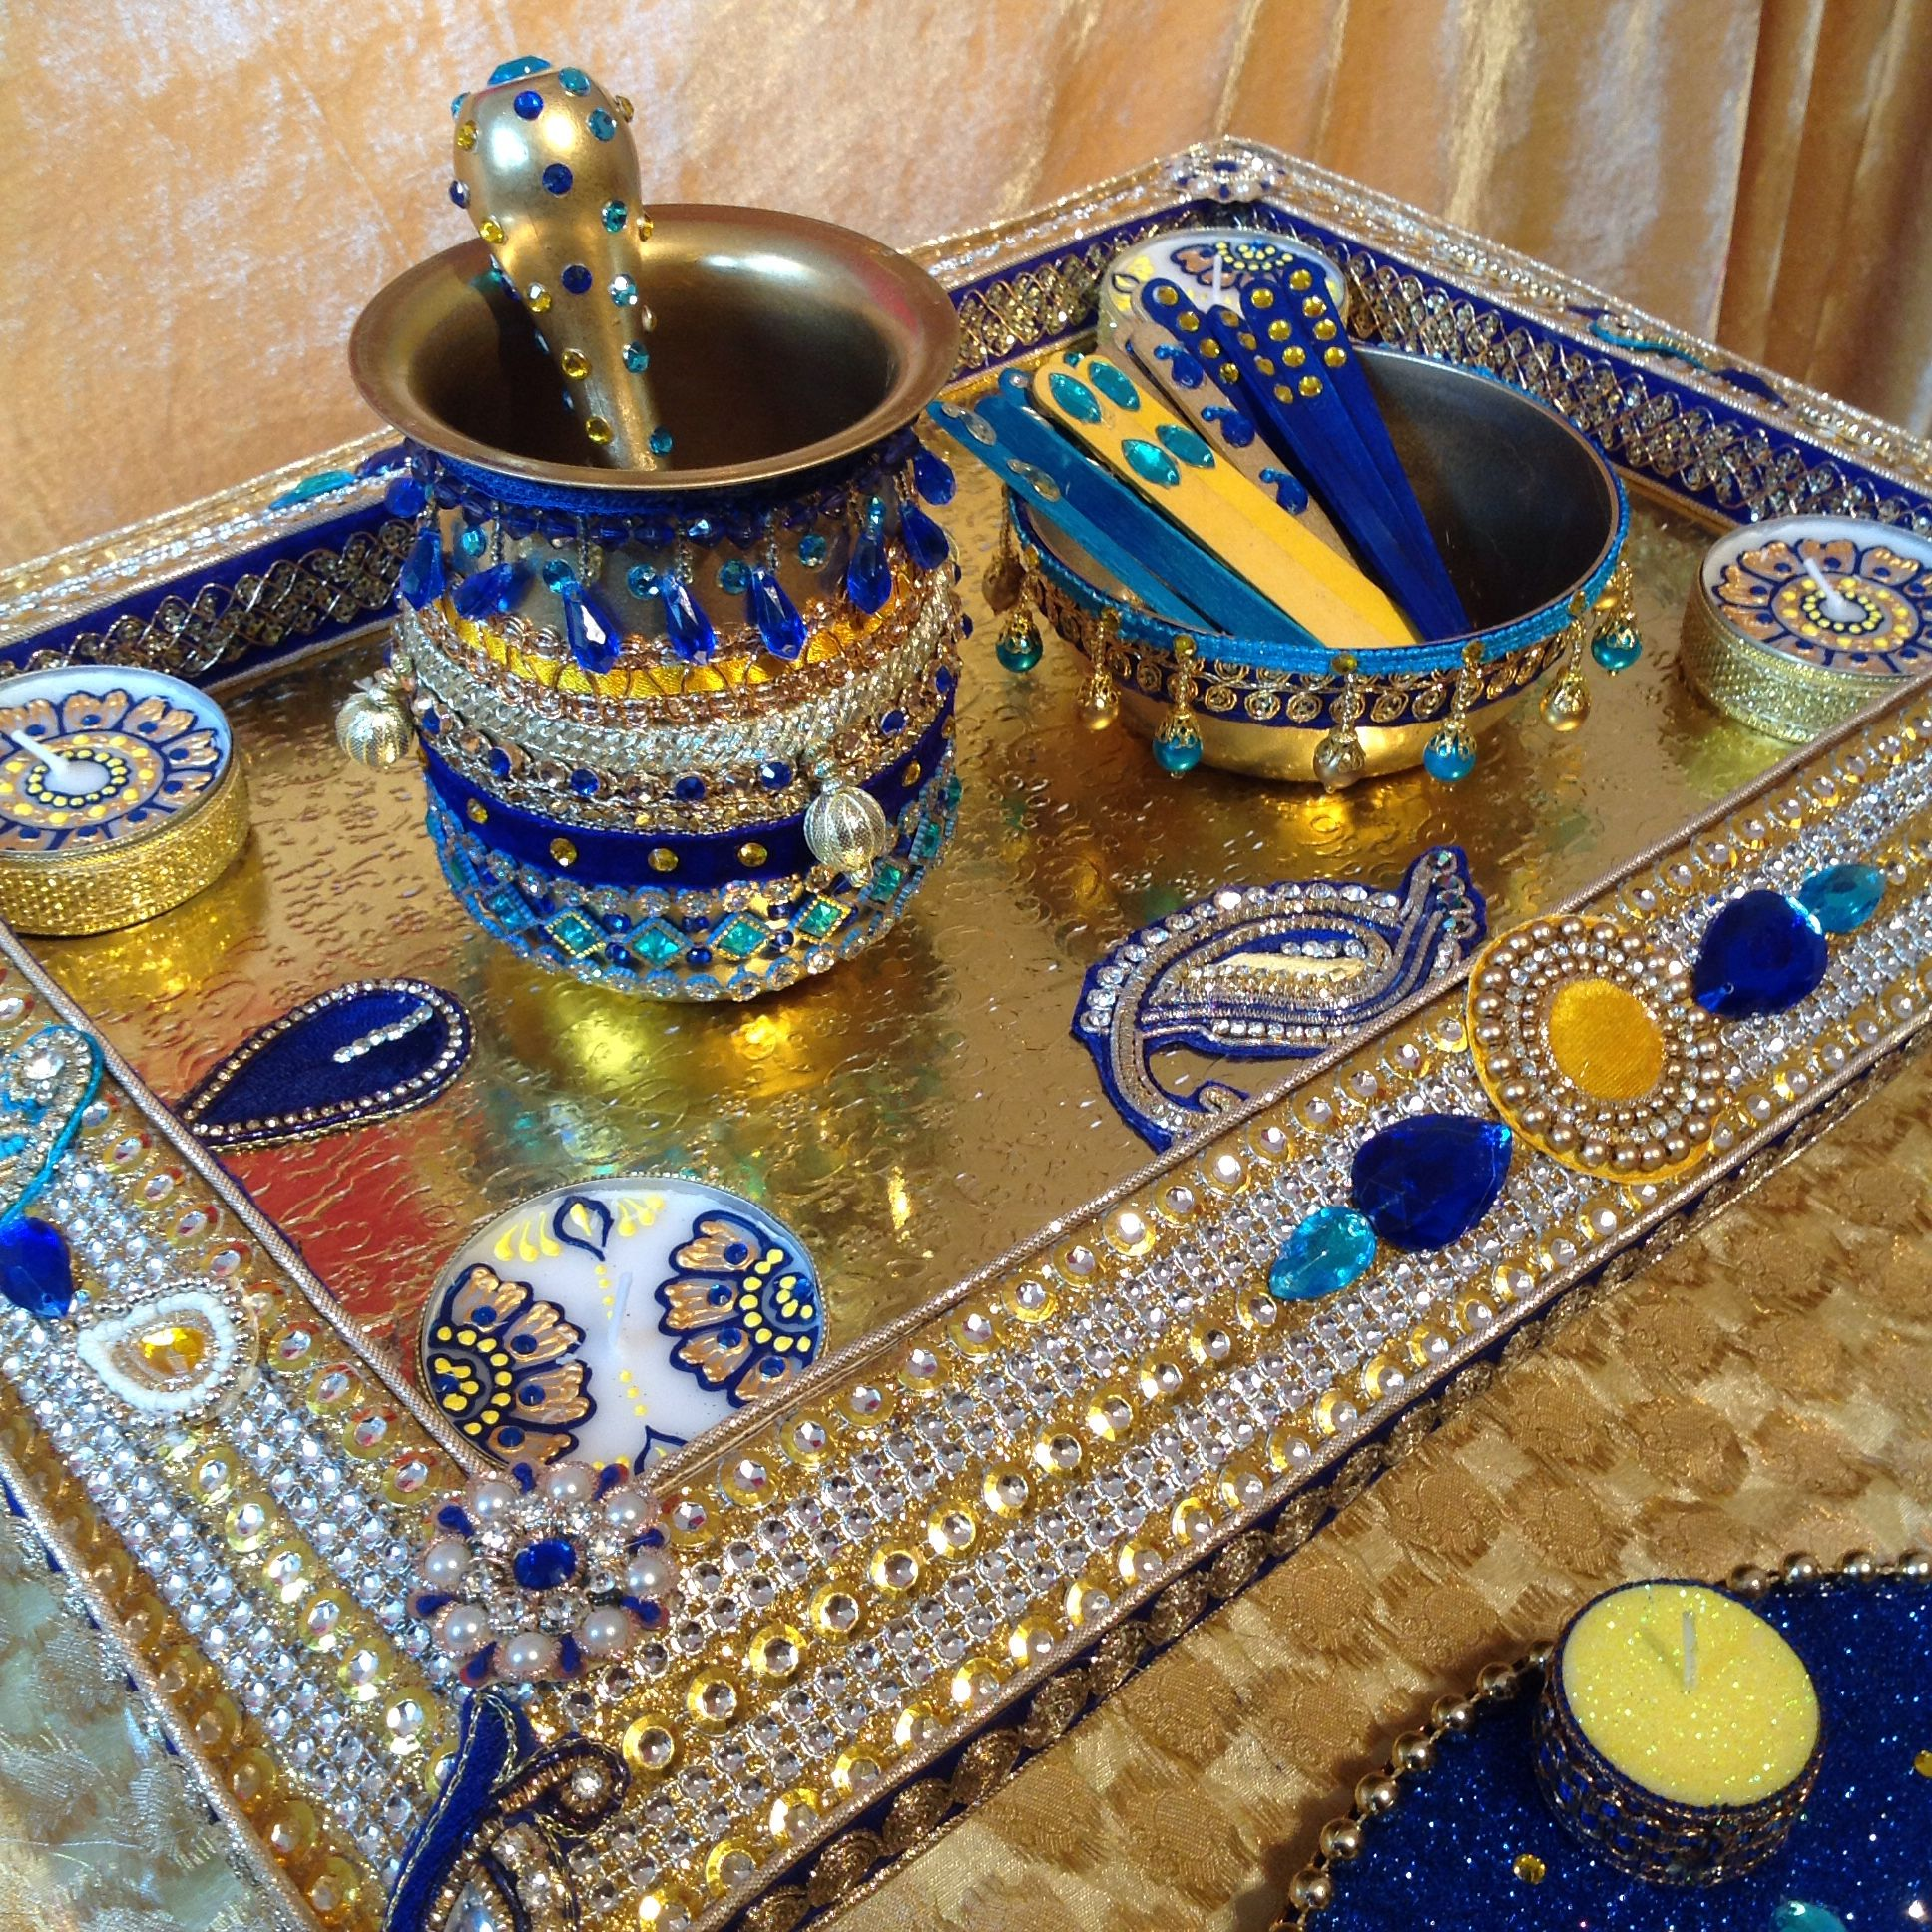 Decoration Of Mehndi Plates : Mehndi plate in royal blue and yellow see my facebook